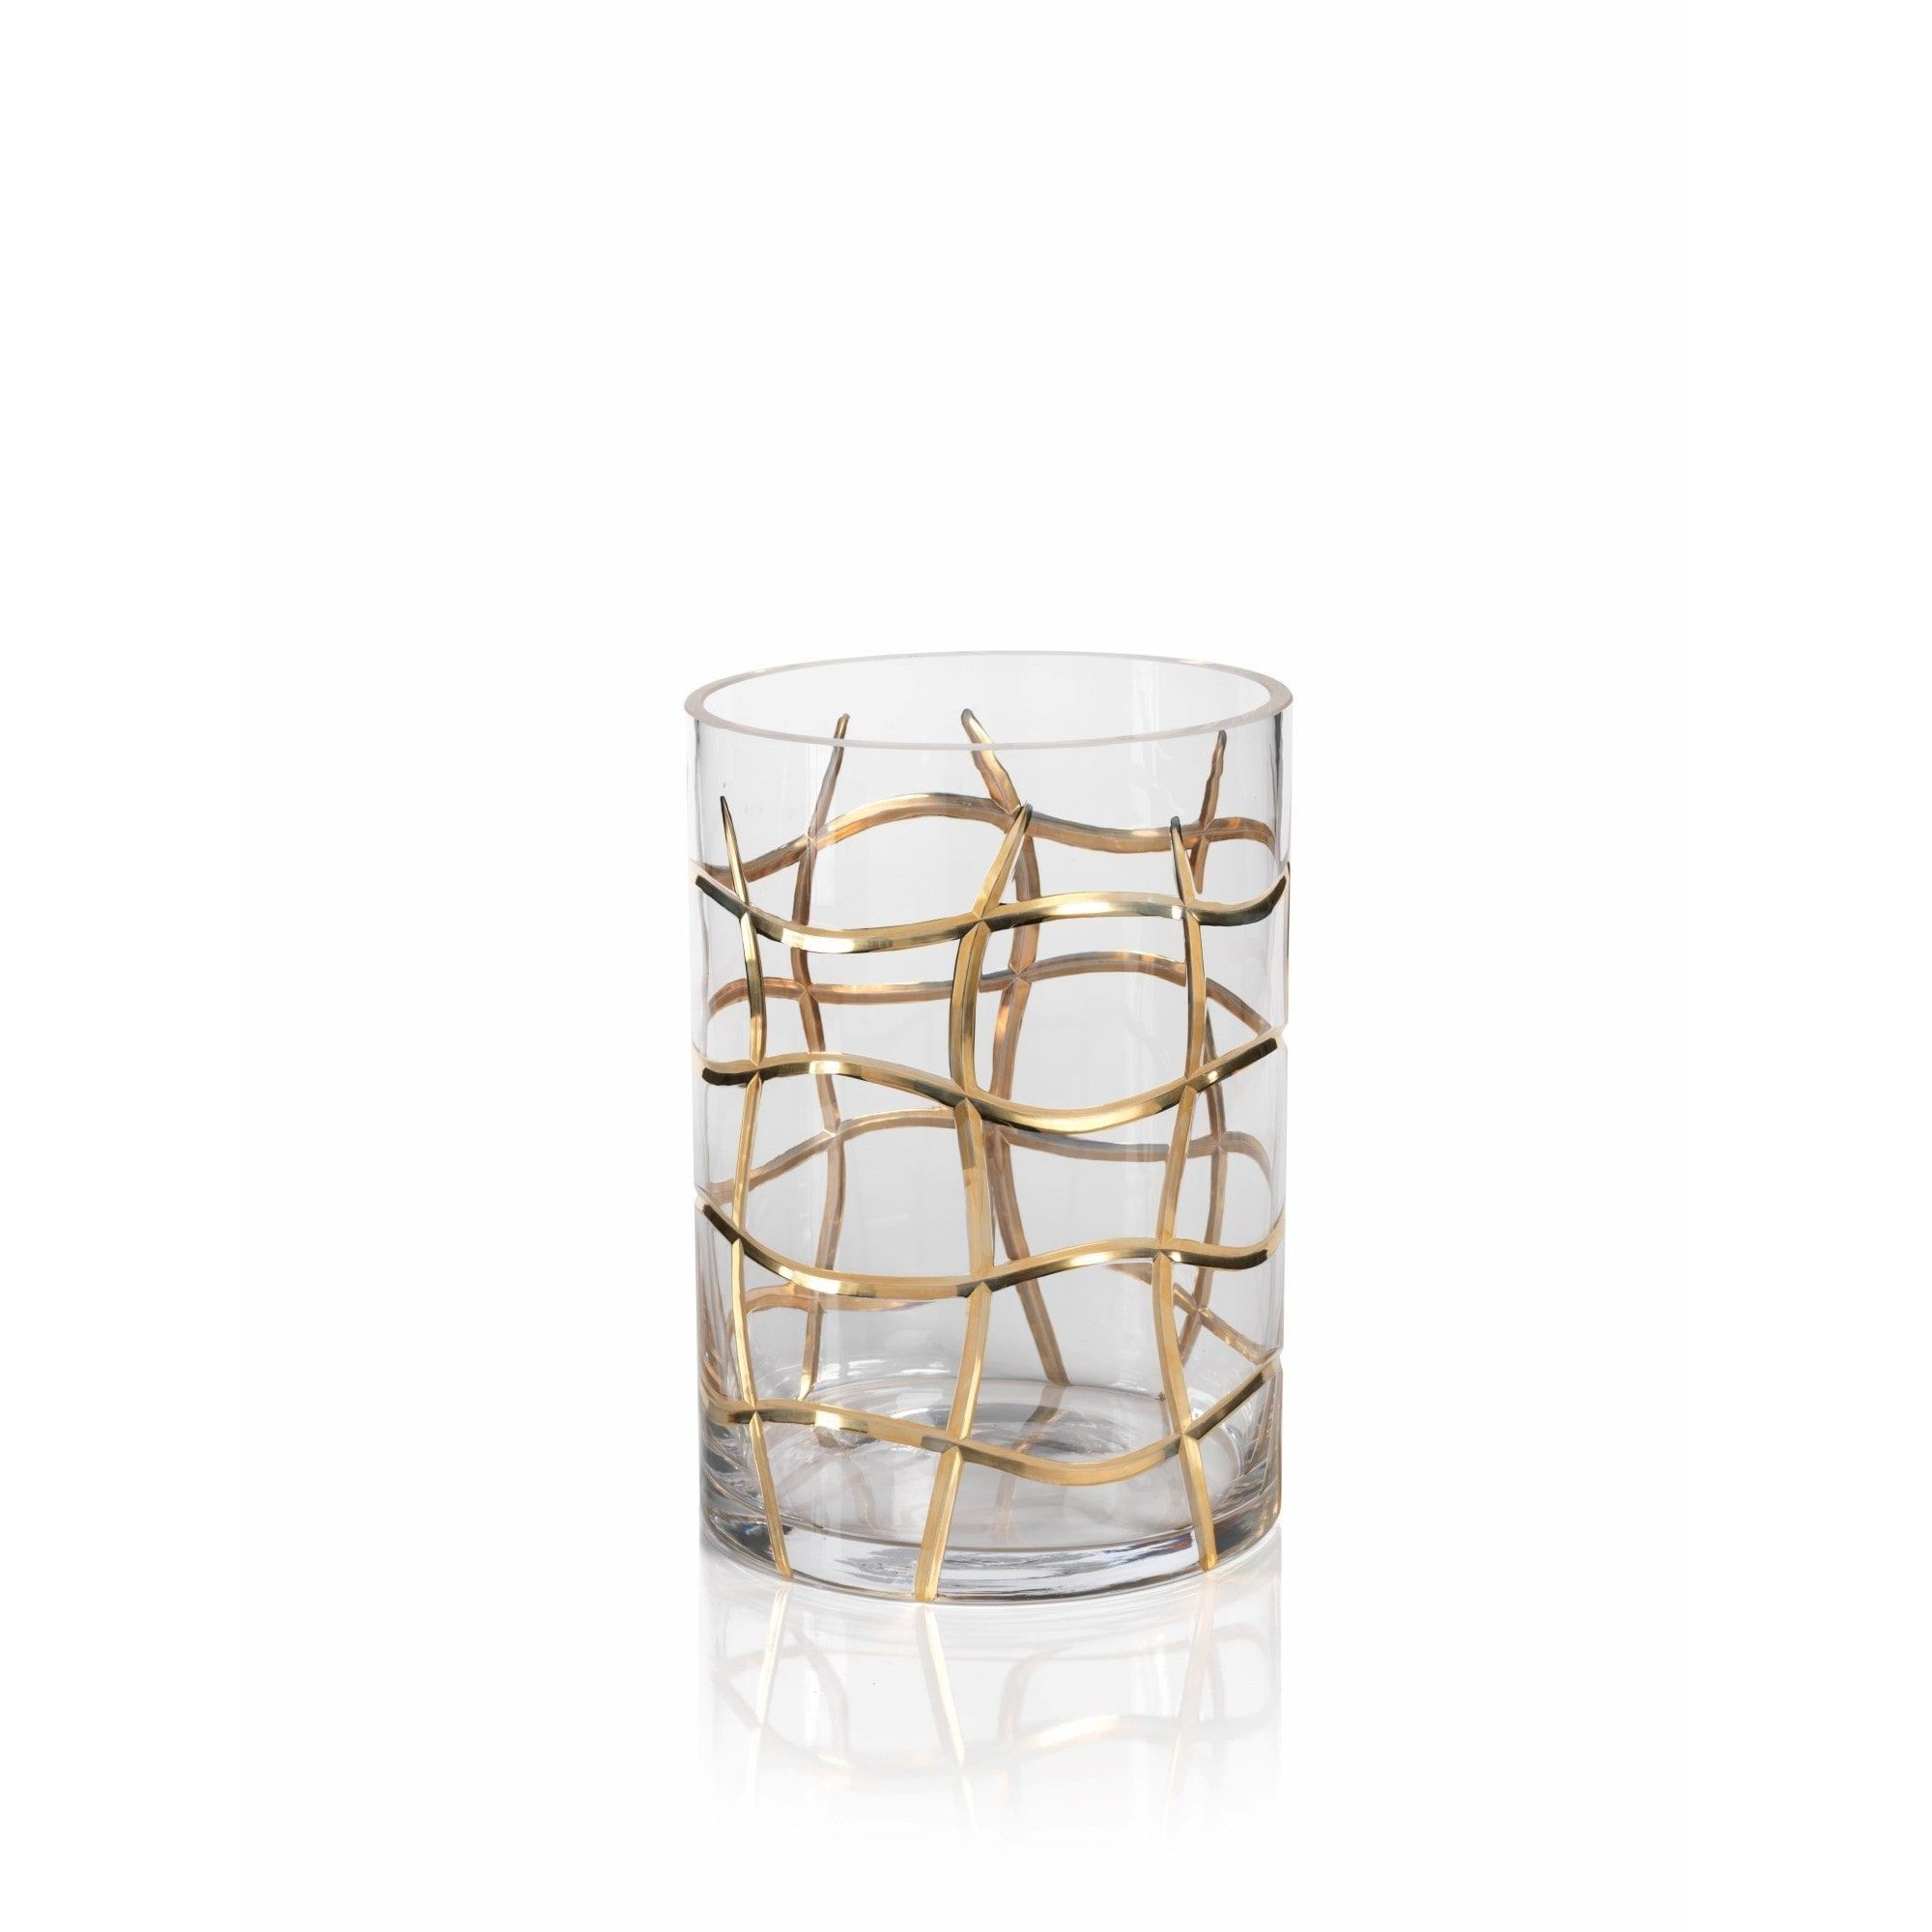 Zodax 10 tall hurricane candle holder groove design 10 inch tall zodax 10 tall hurricane candle holder groove design 10 inch tall groove hurricane reviewsmspy